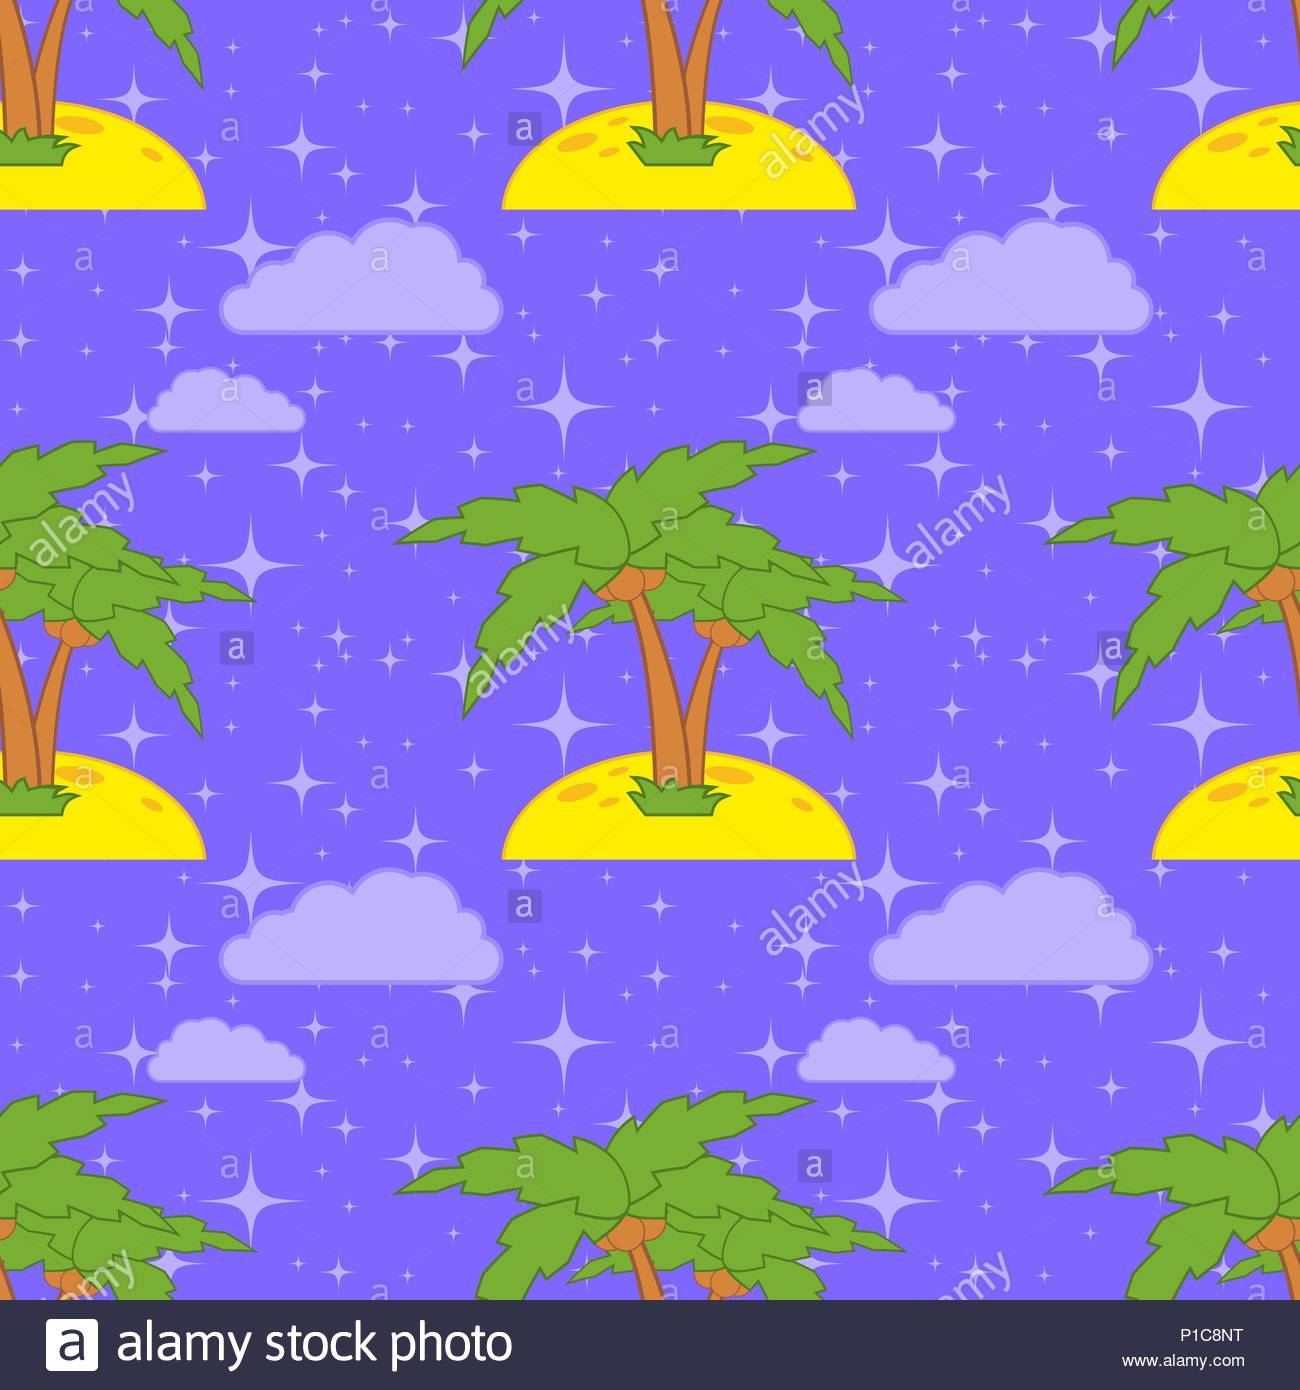 Colorful Seamless Pattern Of Cute Palms On Sand A Blue Background Simple Flat Vector Illustration For The Design Paper Wallpaper Fabric Wrap